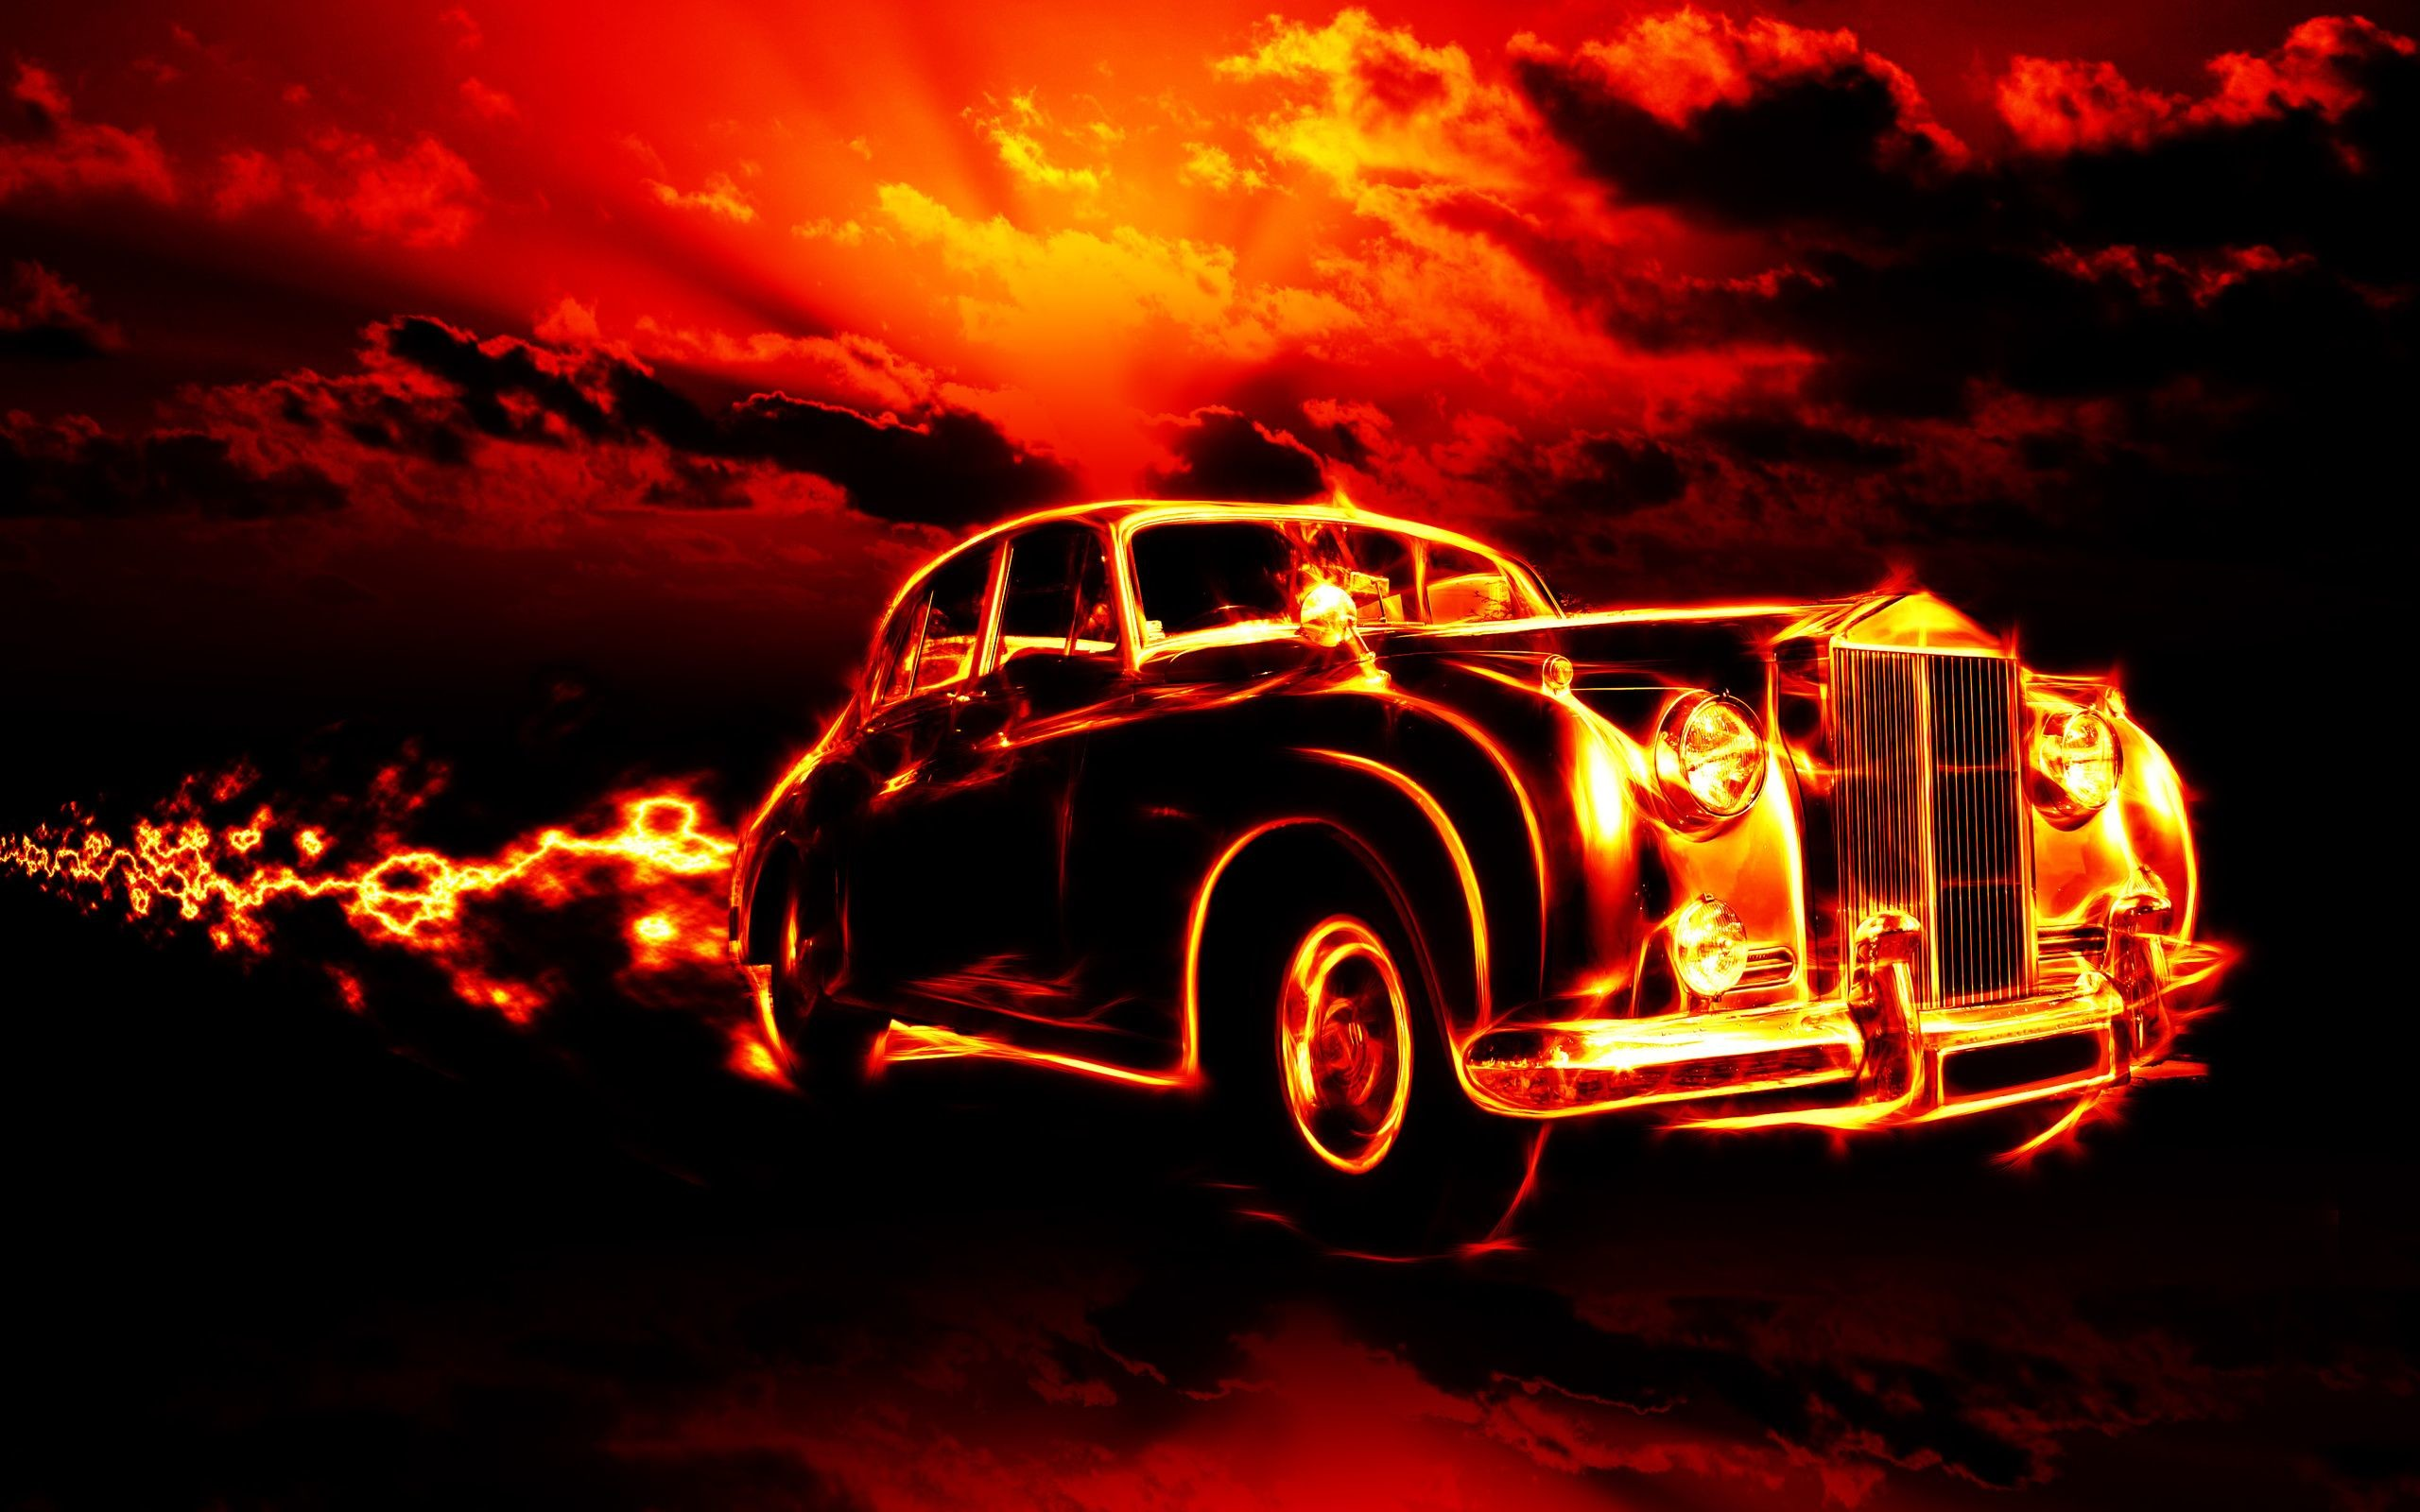 creepy, fire, flame, hell, ghost rider, city, clouds .